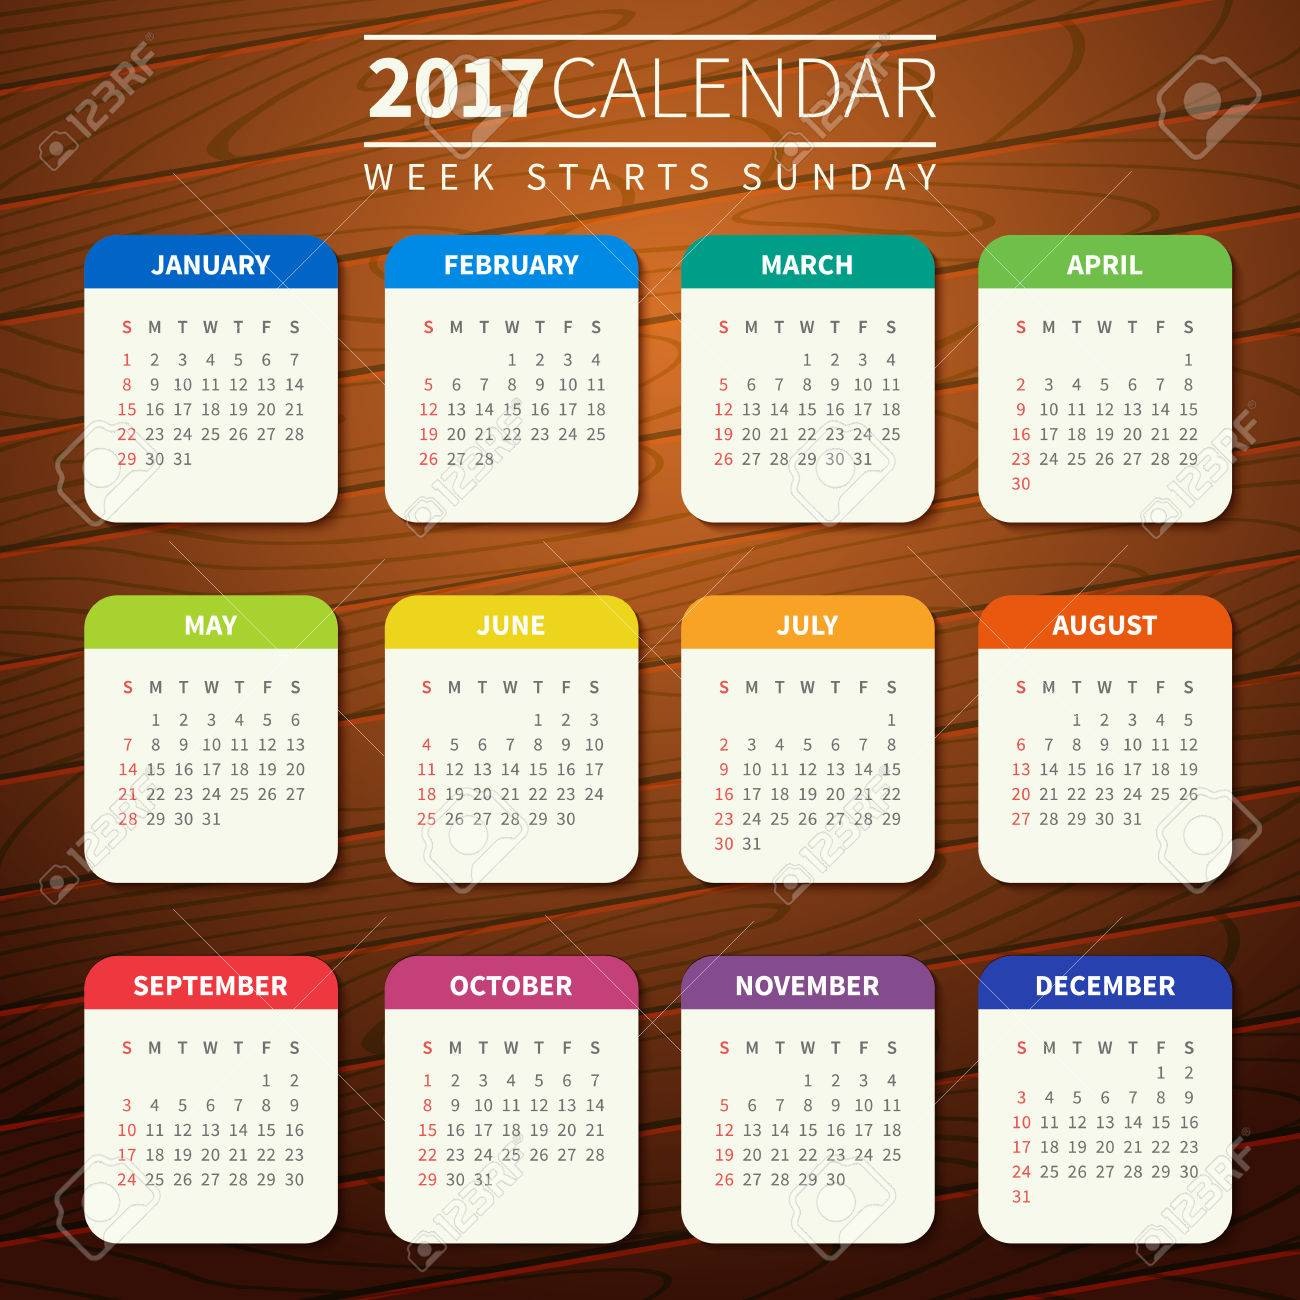 Calendar for 2017 on Wooden Background. Week Starts Sunday. Simple Vector Template. For web and print design. Vector illustration. Vertical orientation. Flat design color on wood texture - 66774687